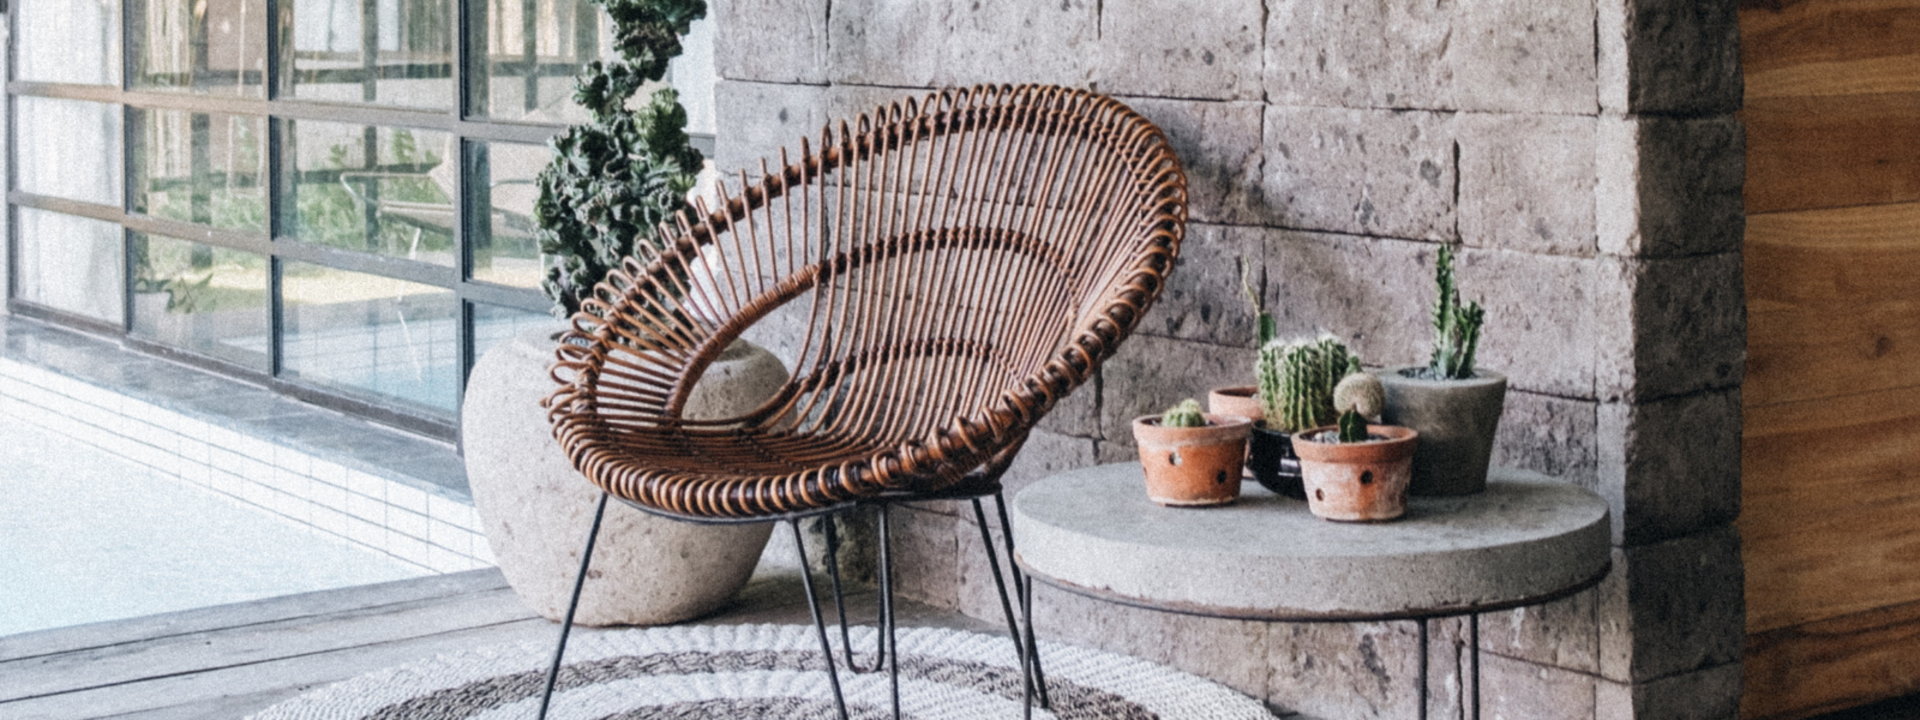 19 Ideas To Upgrade Your Outdoor Space